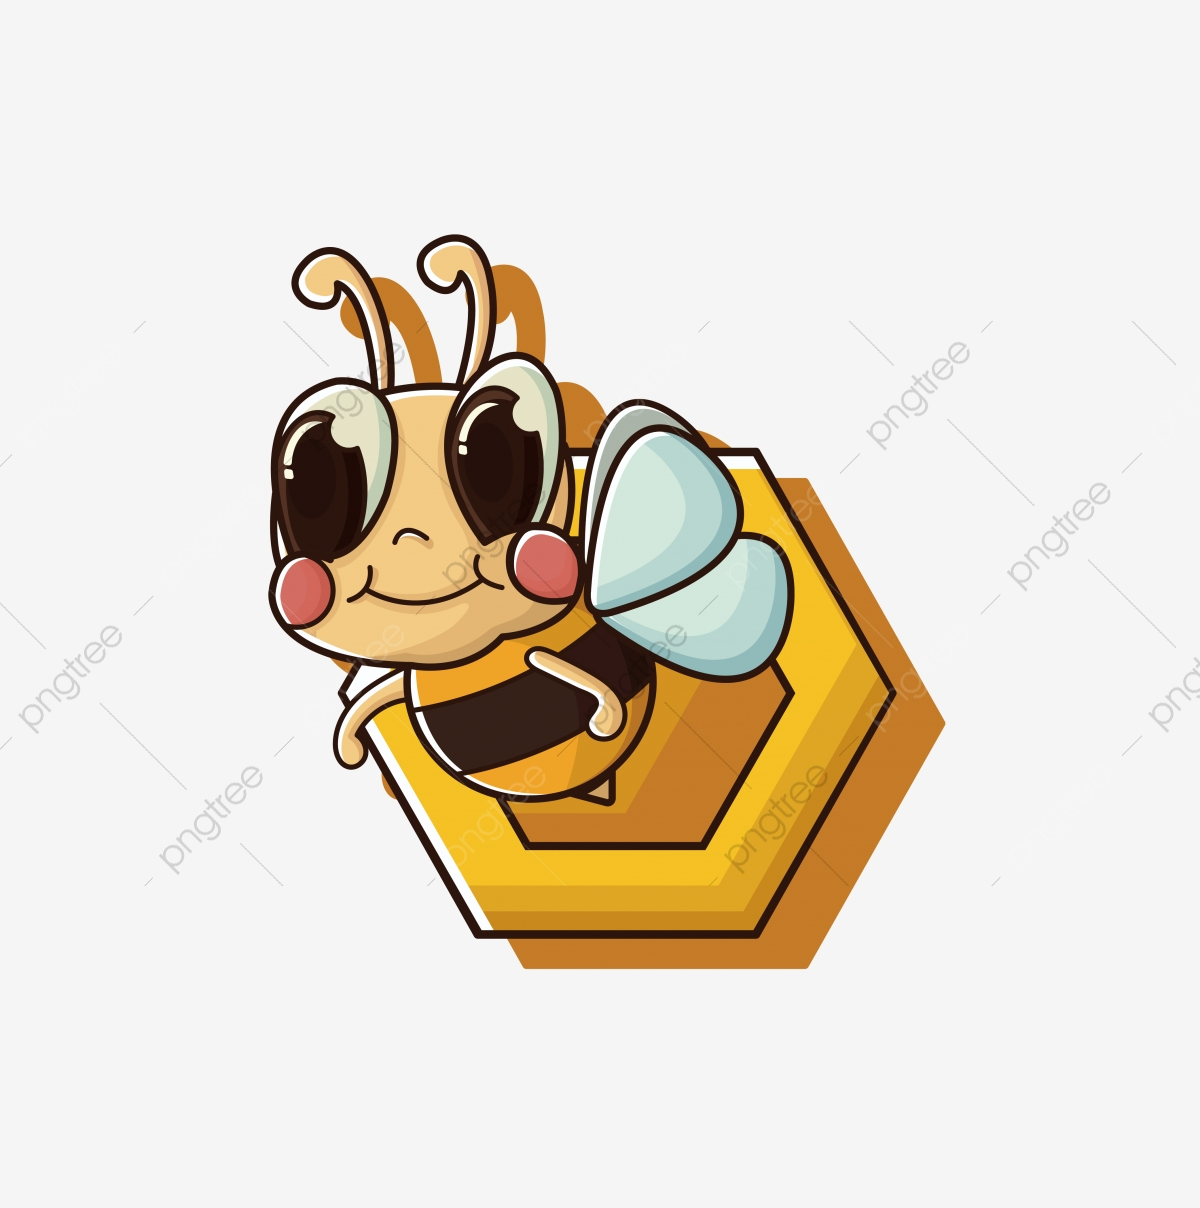 Little Bee Png Free Mbe Style Bee Yellow Bee Cartoon Bee Cute Bee Staying Cute Bee Hand Painted Bee Png And Vector With Transparent Background For Free Download